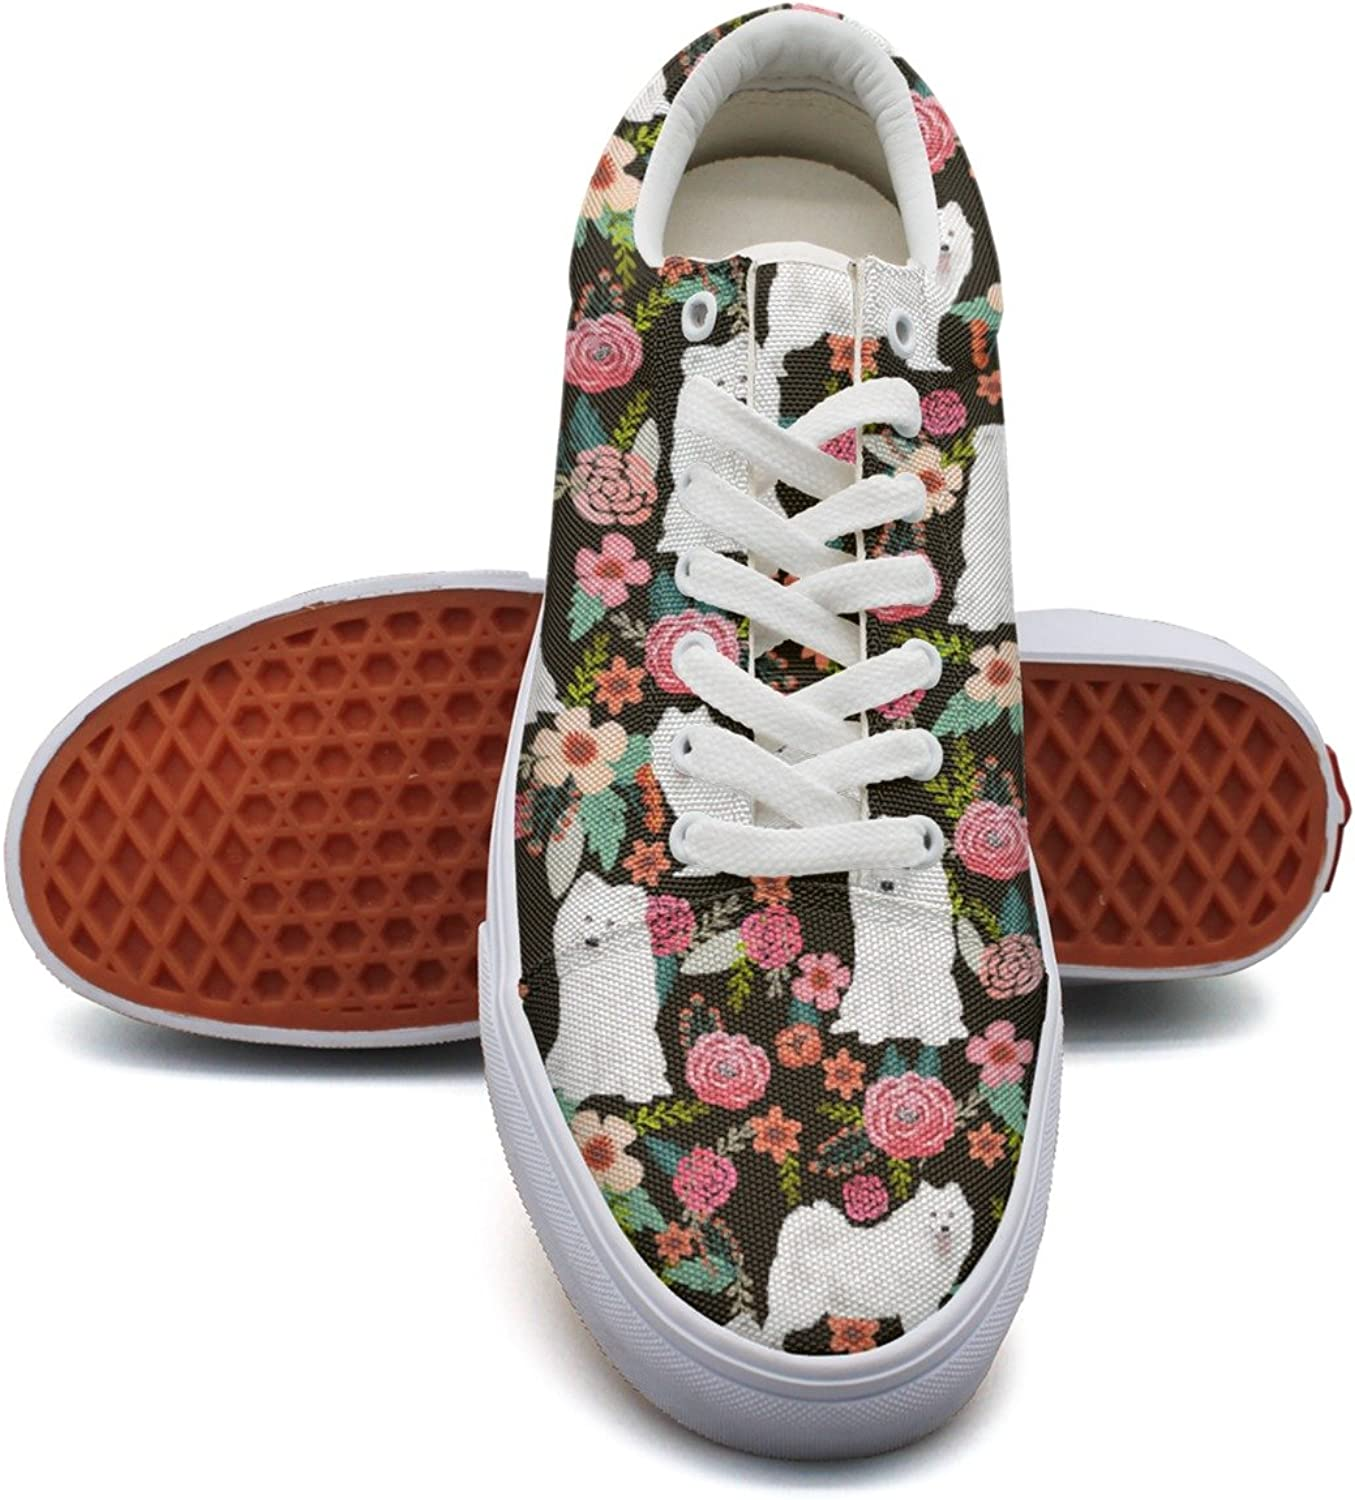 Feenfling Samoyed Dog Vintage Floral Womens Fashion Canvas Tennis shoes Low Top Hip Hop Sneaker for Women